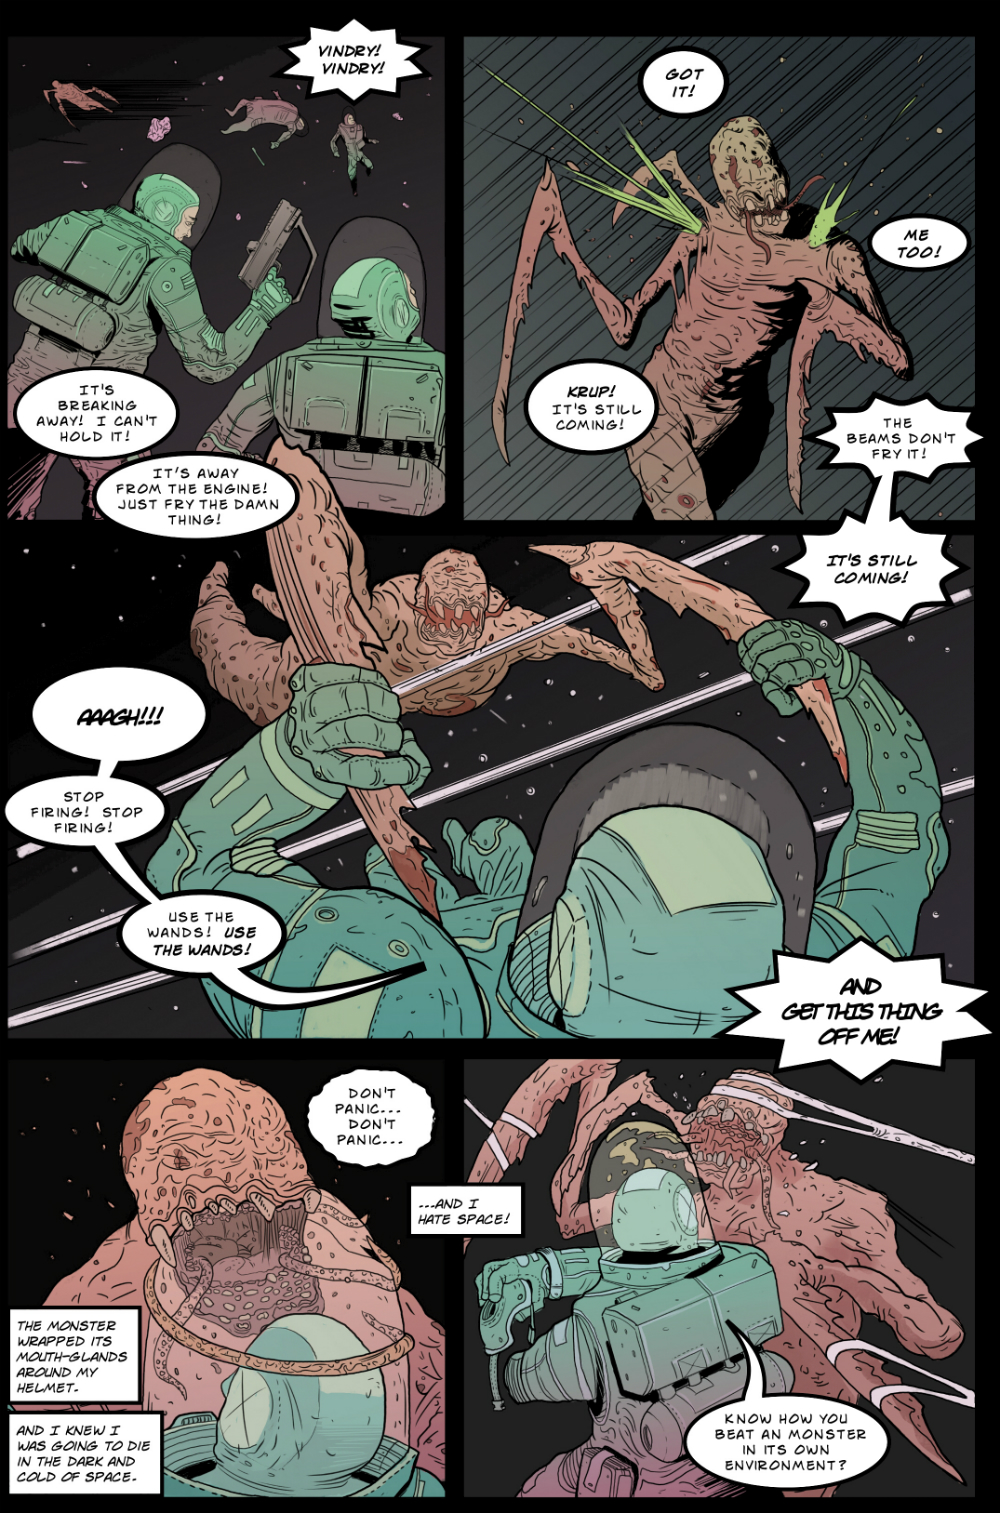 IN SPACE page 7 -- story 24 in THE BOOK OF LIES